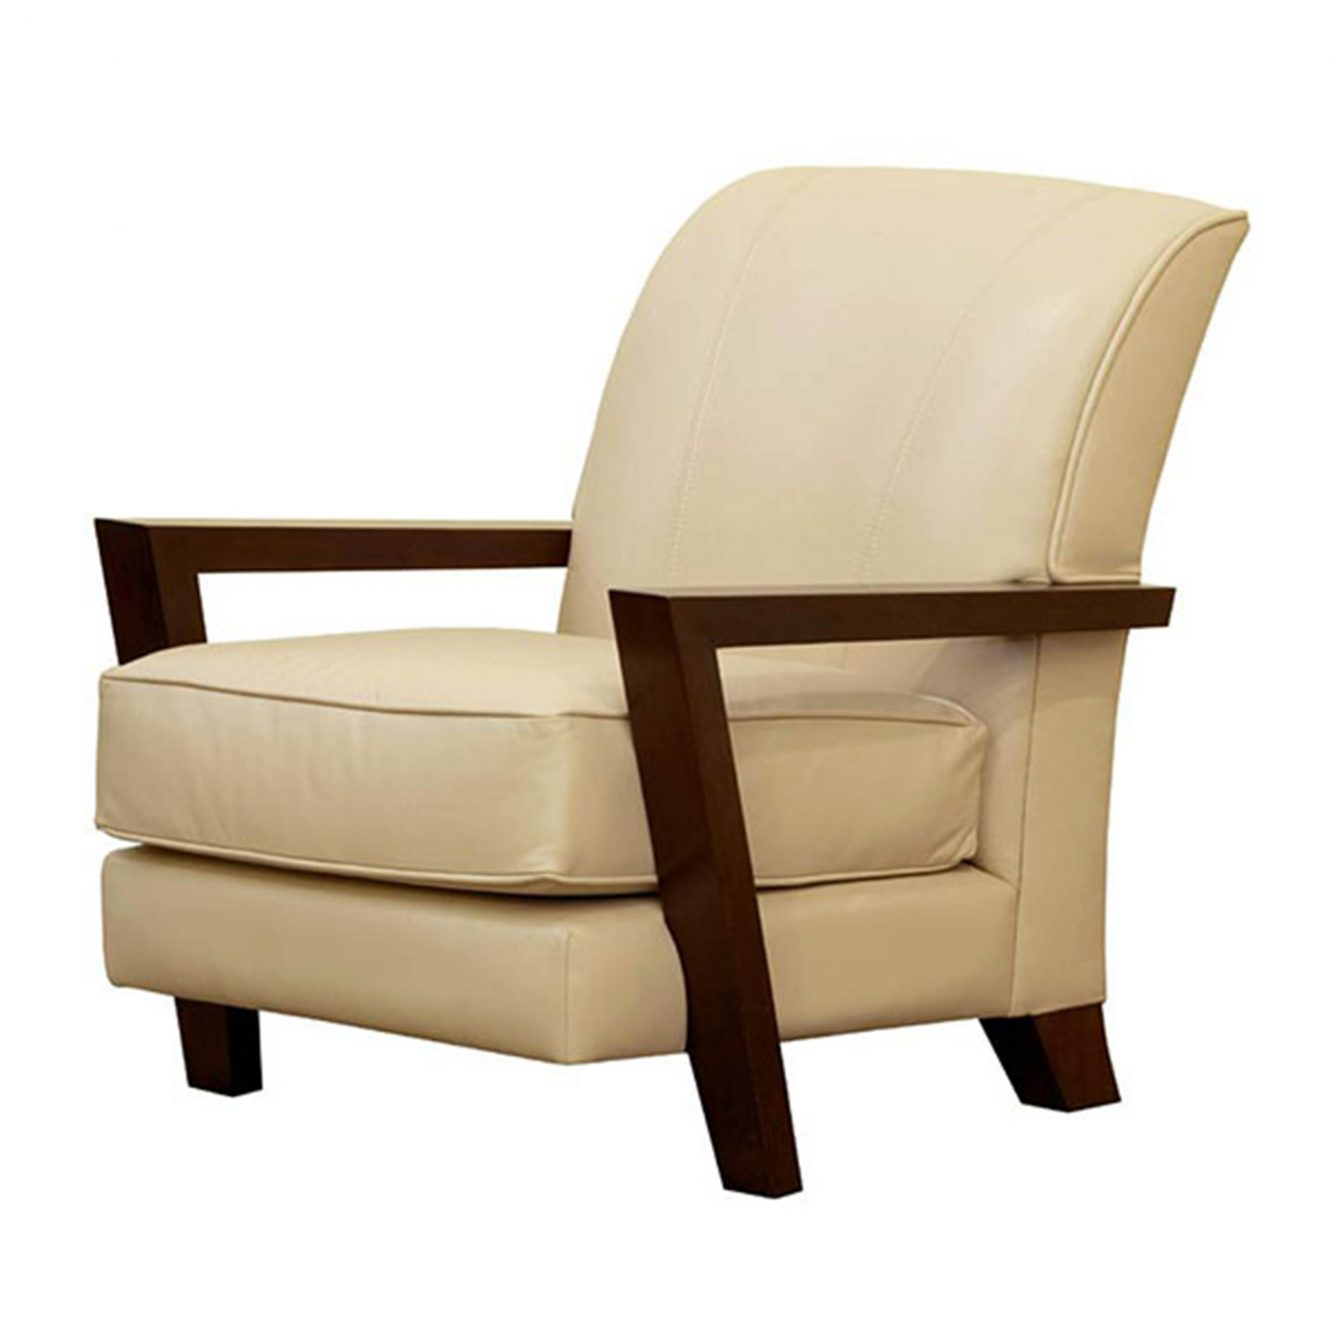 House Haven Occasional Chairs 0032 Bart Chair